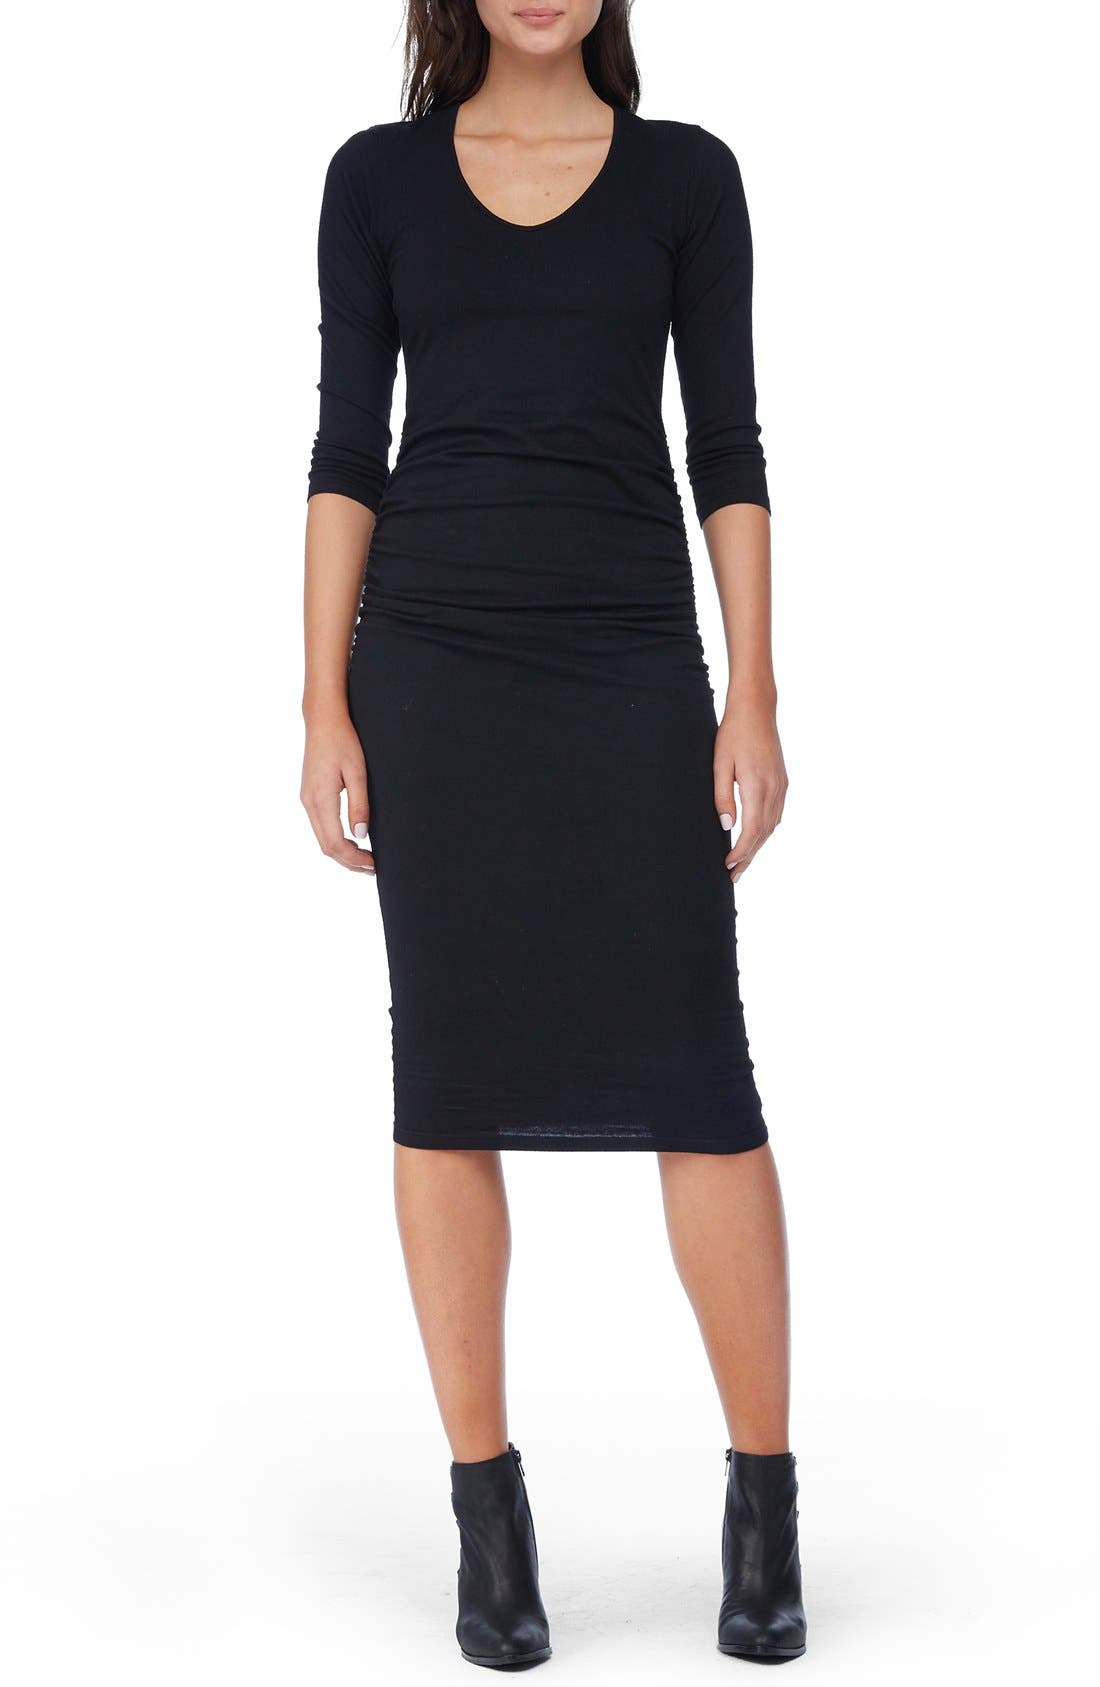 MICHAEL STARS Ruched Midi Dress, Main, color, BLACK